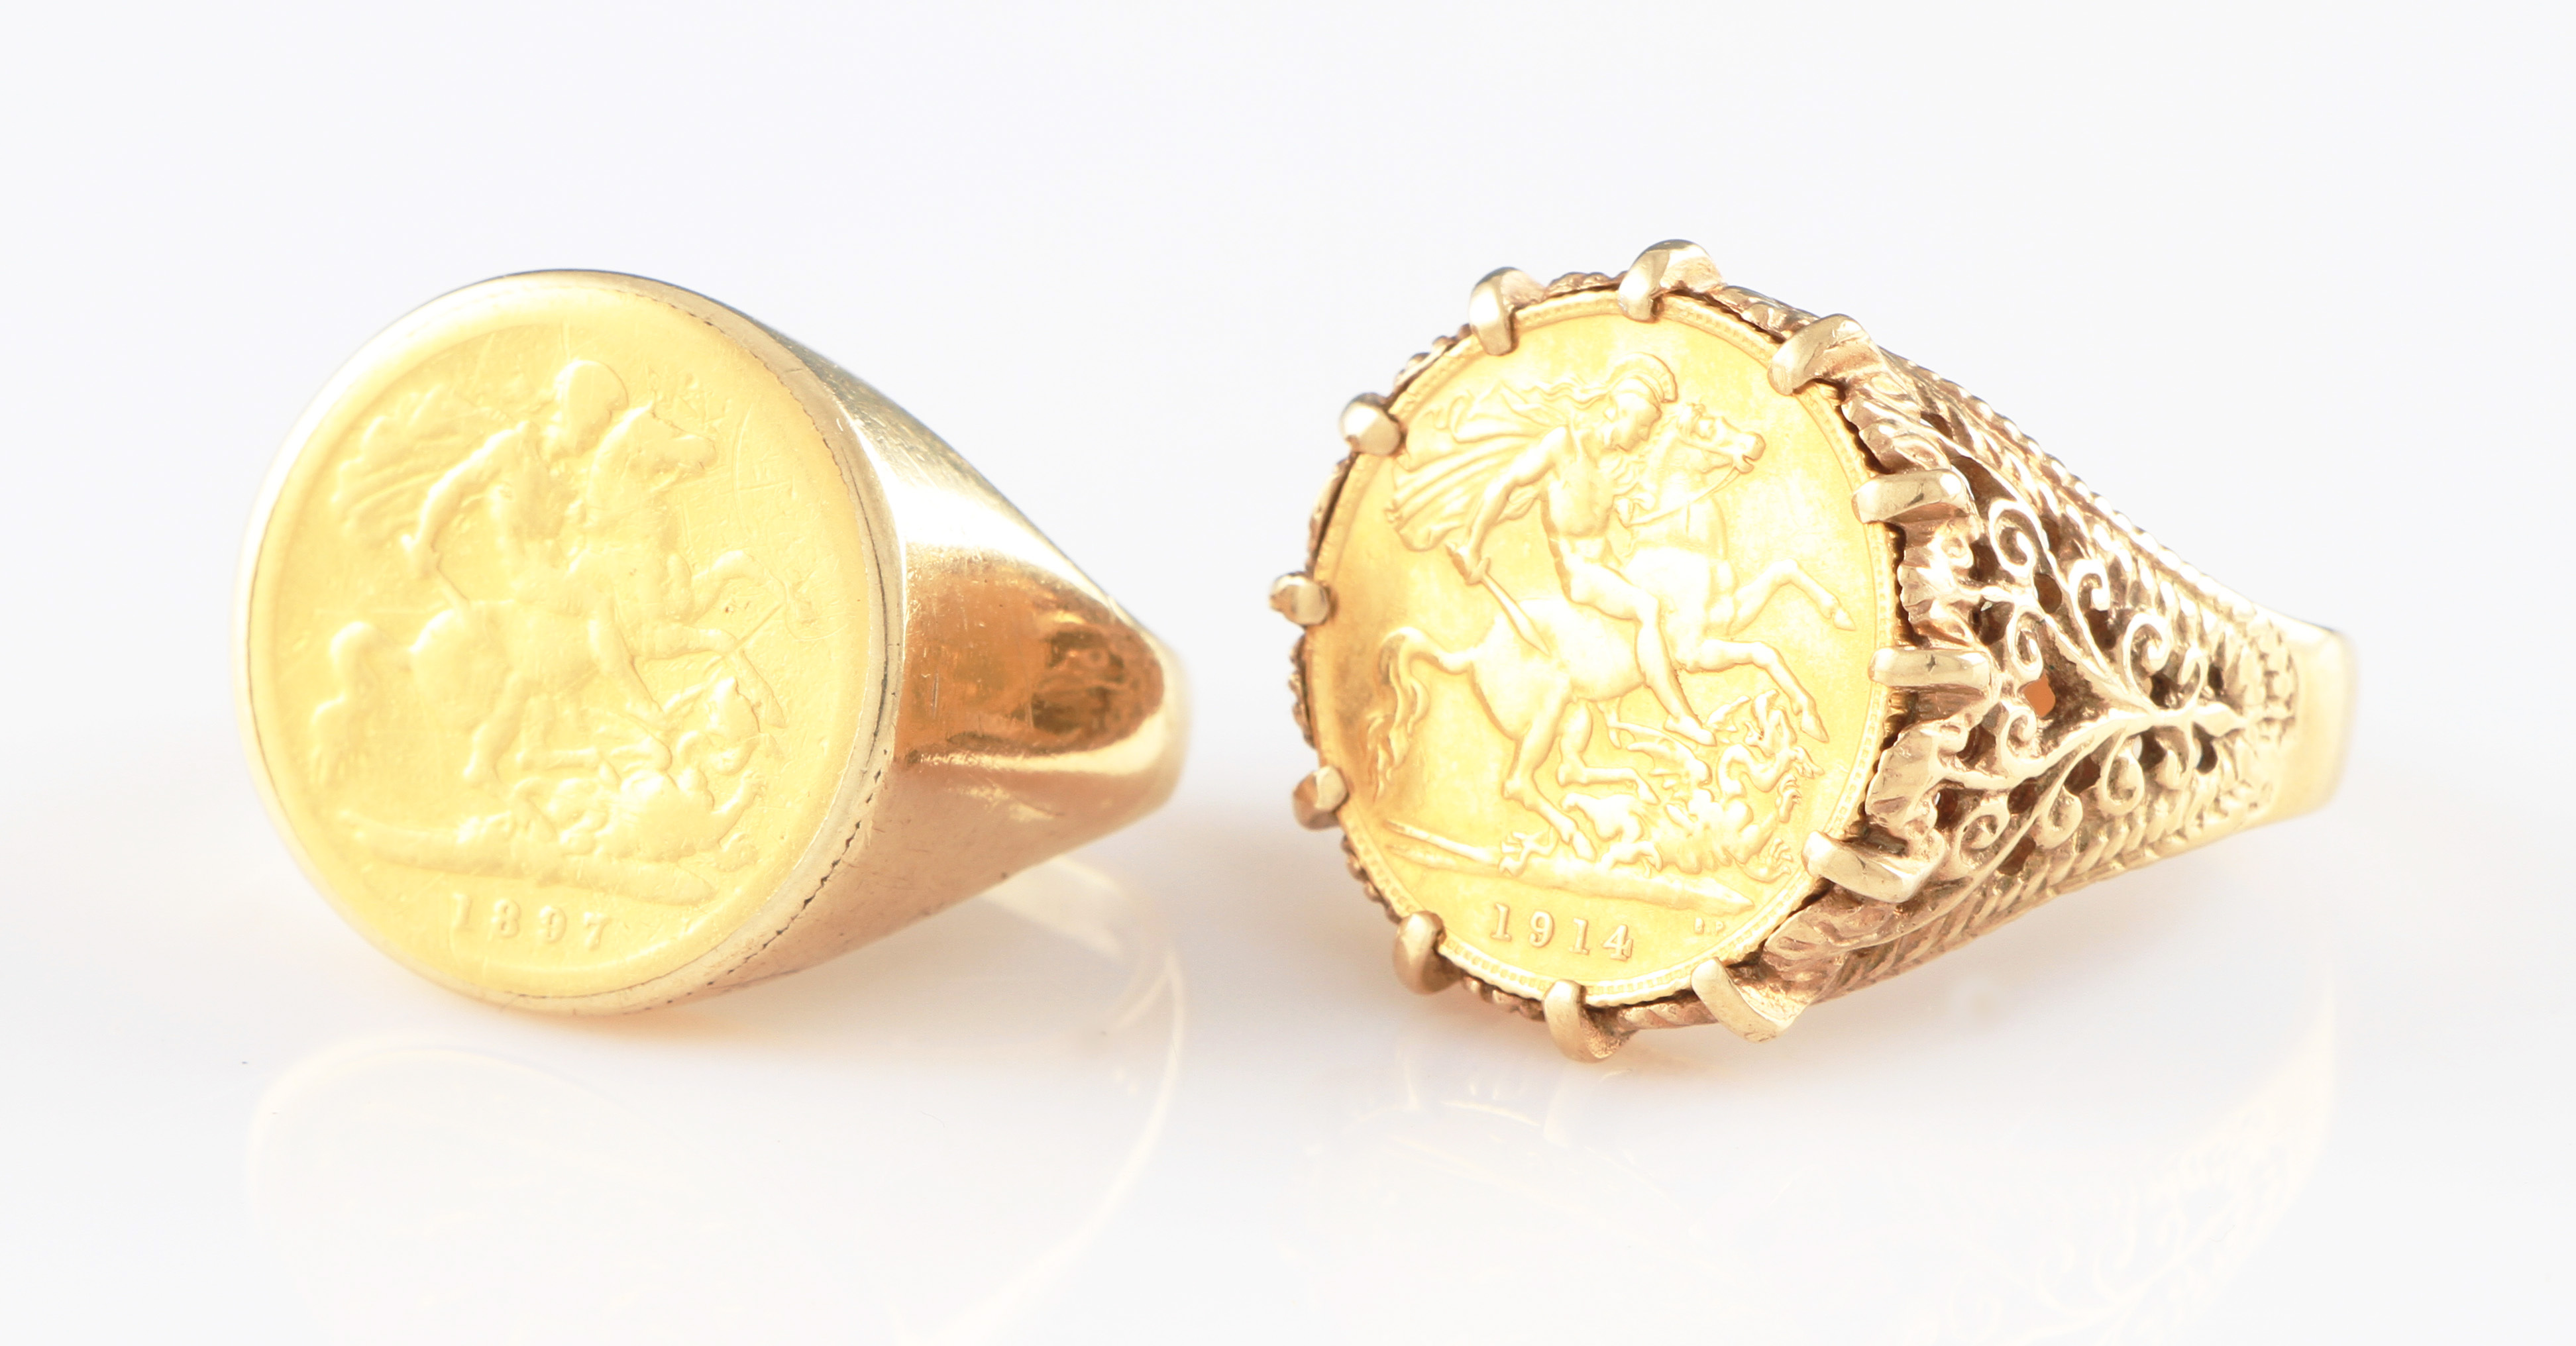 conscious totally gold rings recycled friendly eco wedding and soveriegn coin back handcrafted shield sovereign